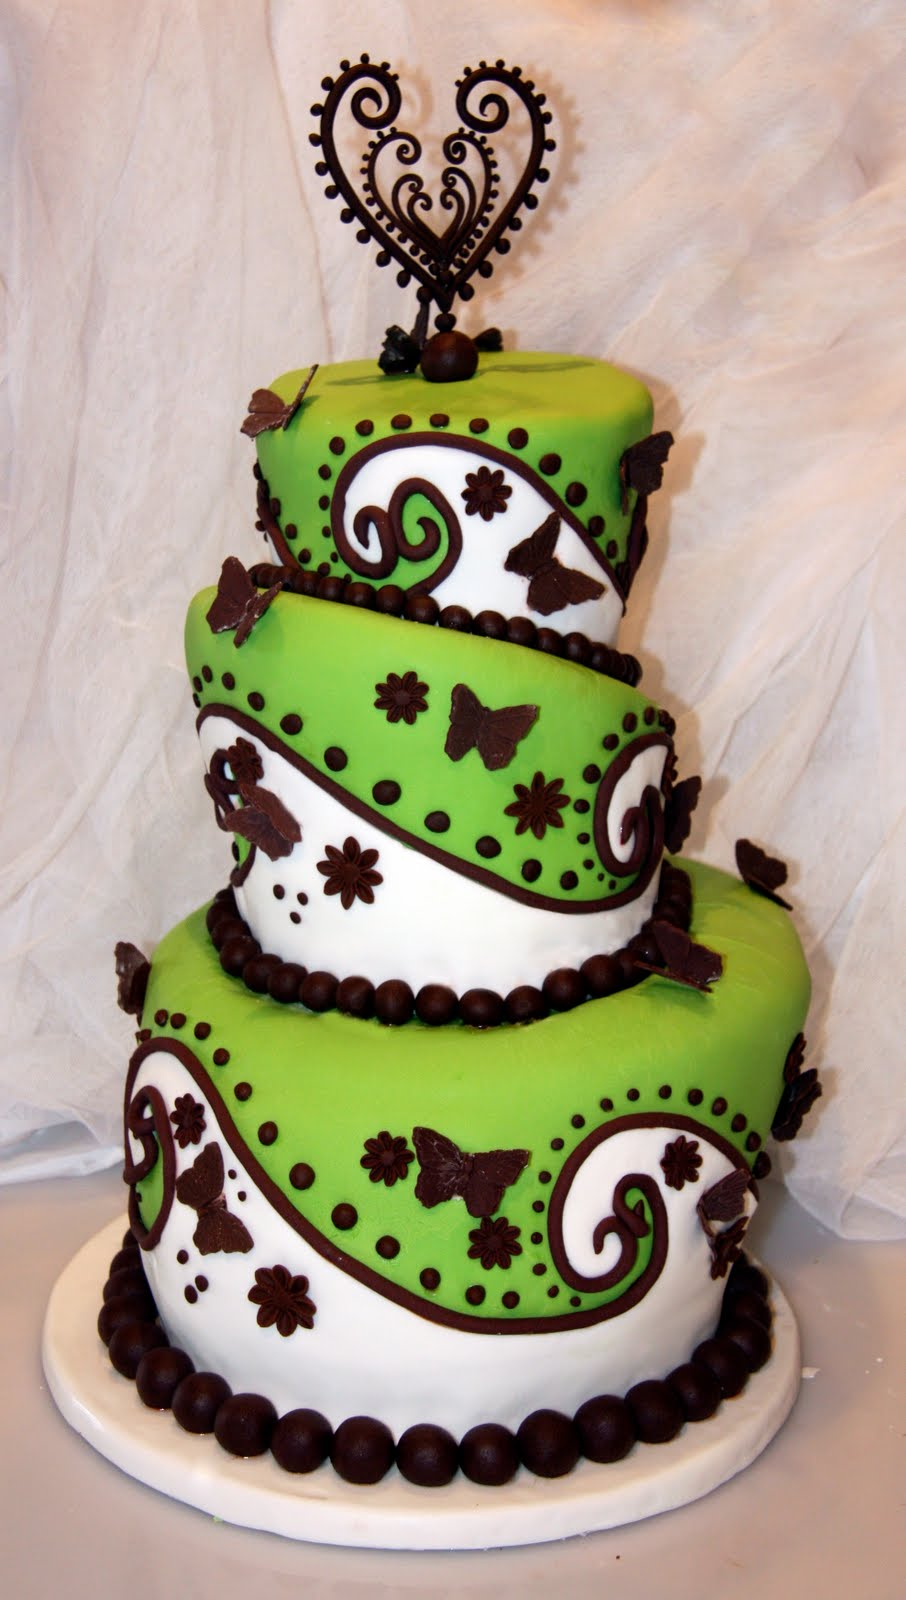 Living Life: For The Love Of Cake